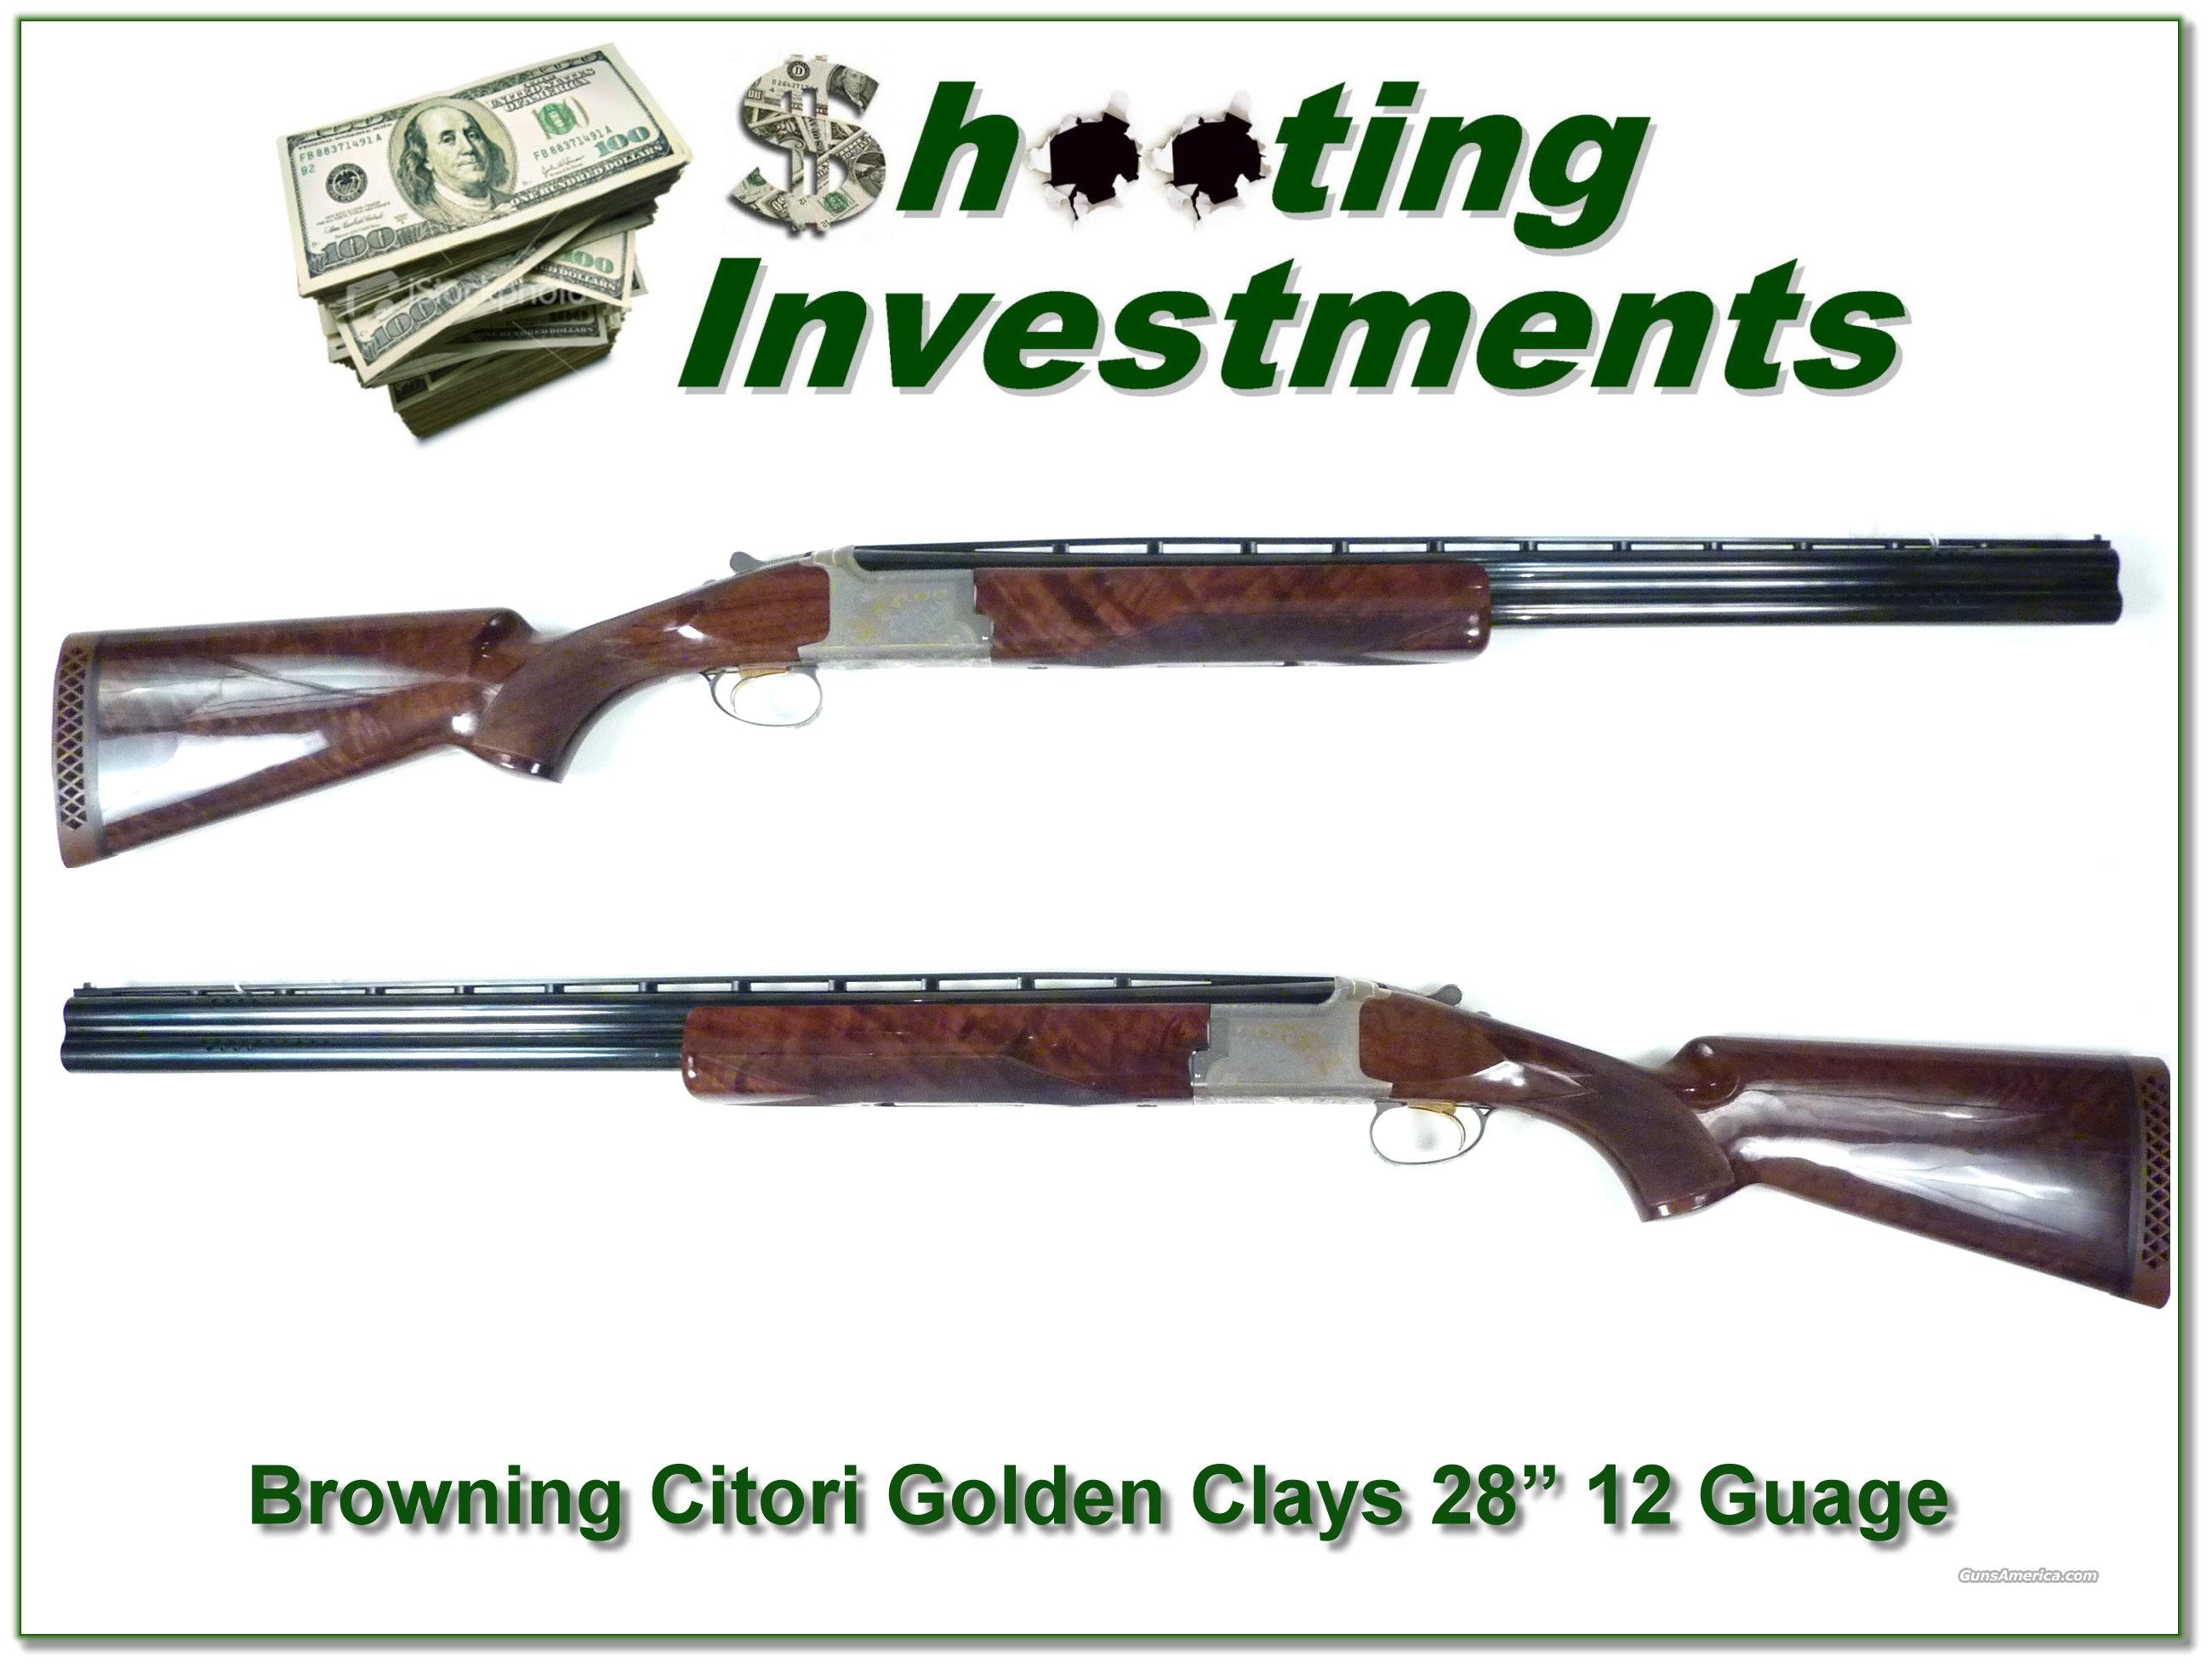 "Browning Citori Golden Clays 28"" 12 Guage  Guns > Shotguns > Browning Shotguns > Over Unders > Citori > Hunting"